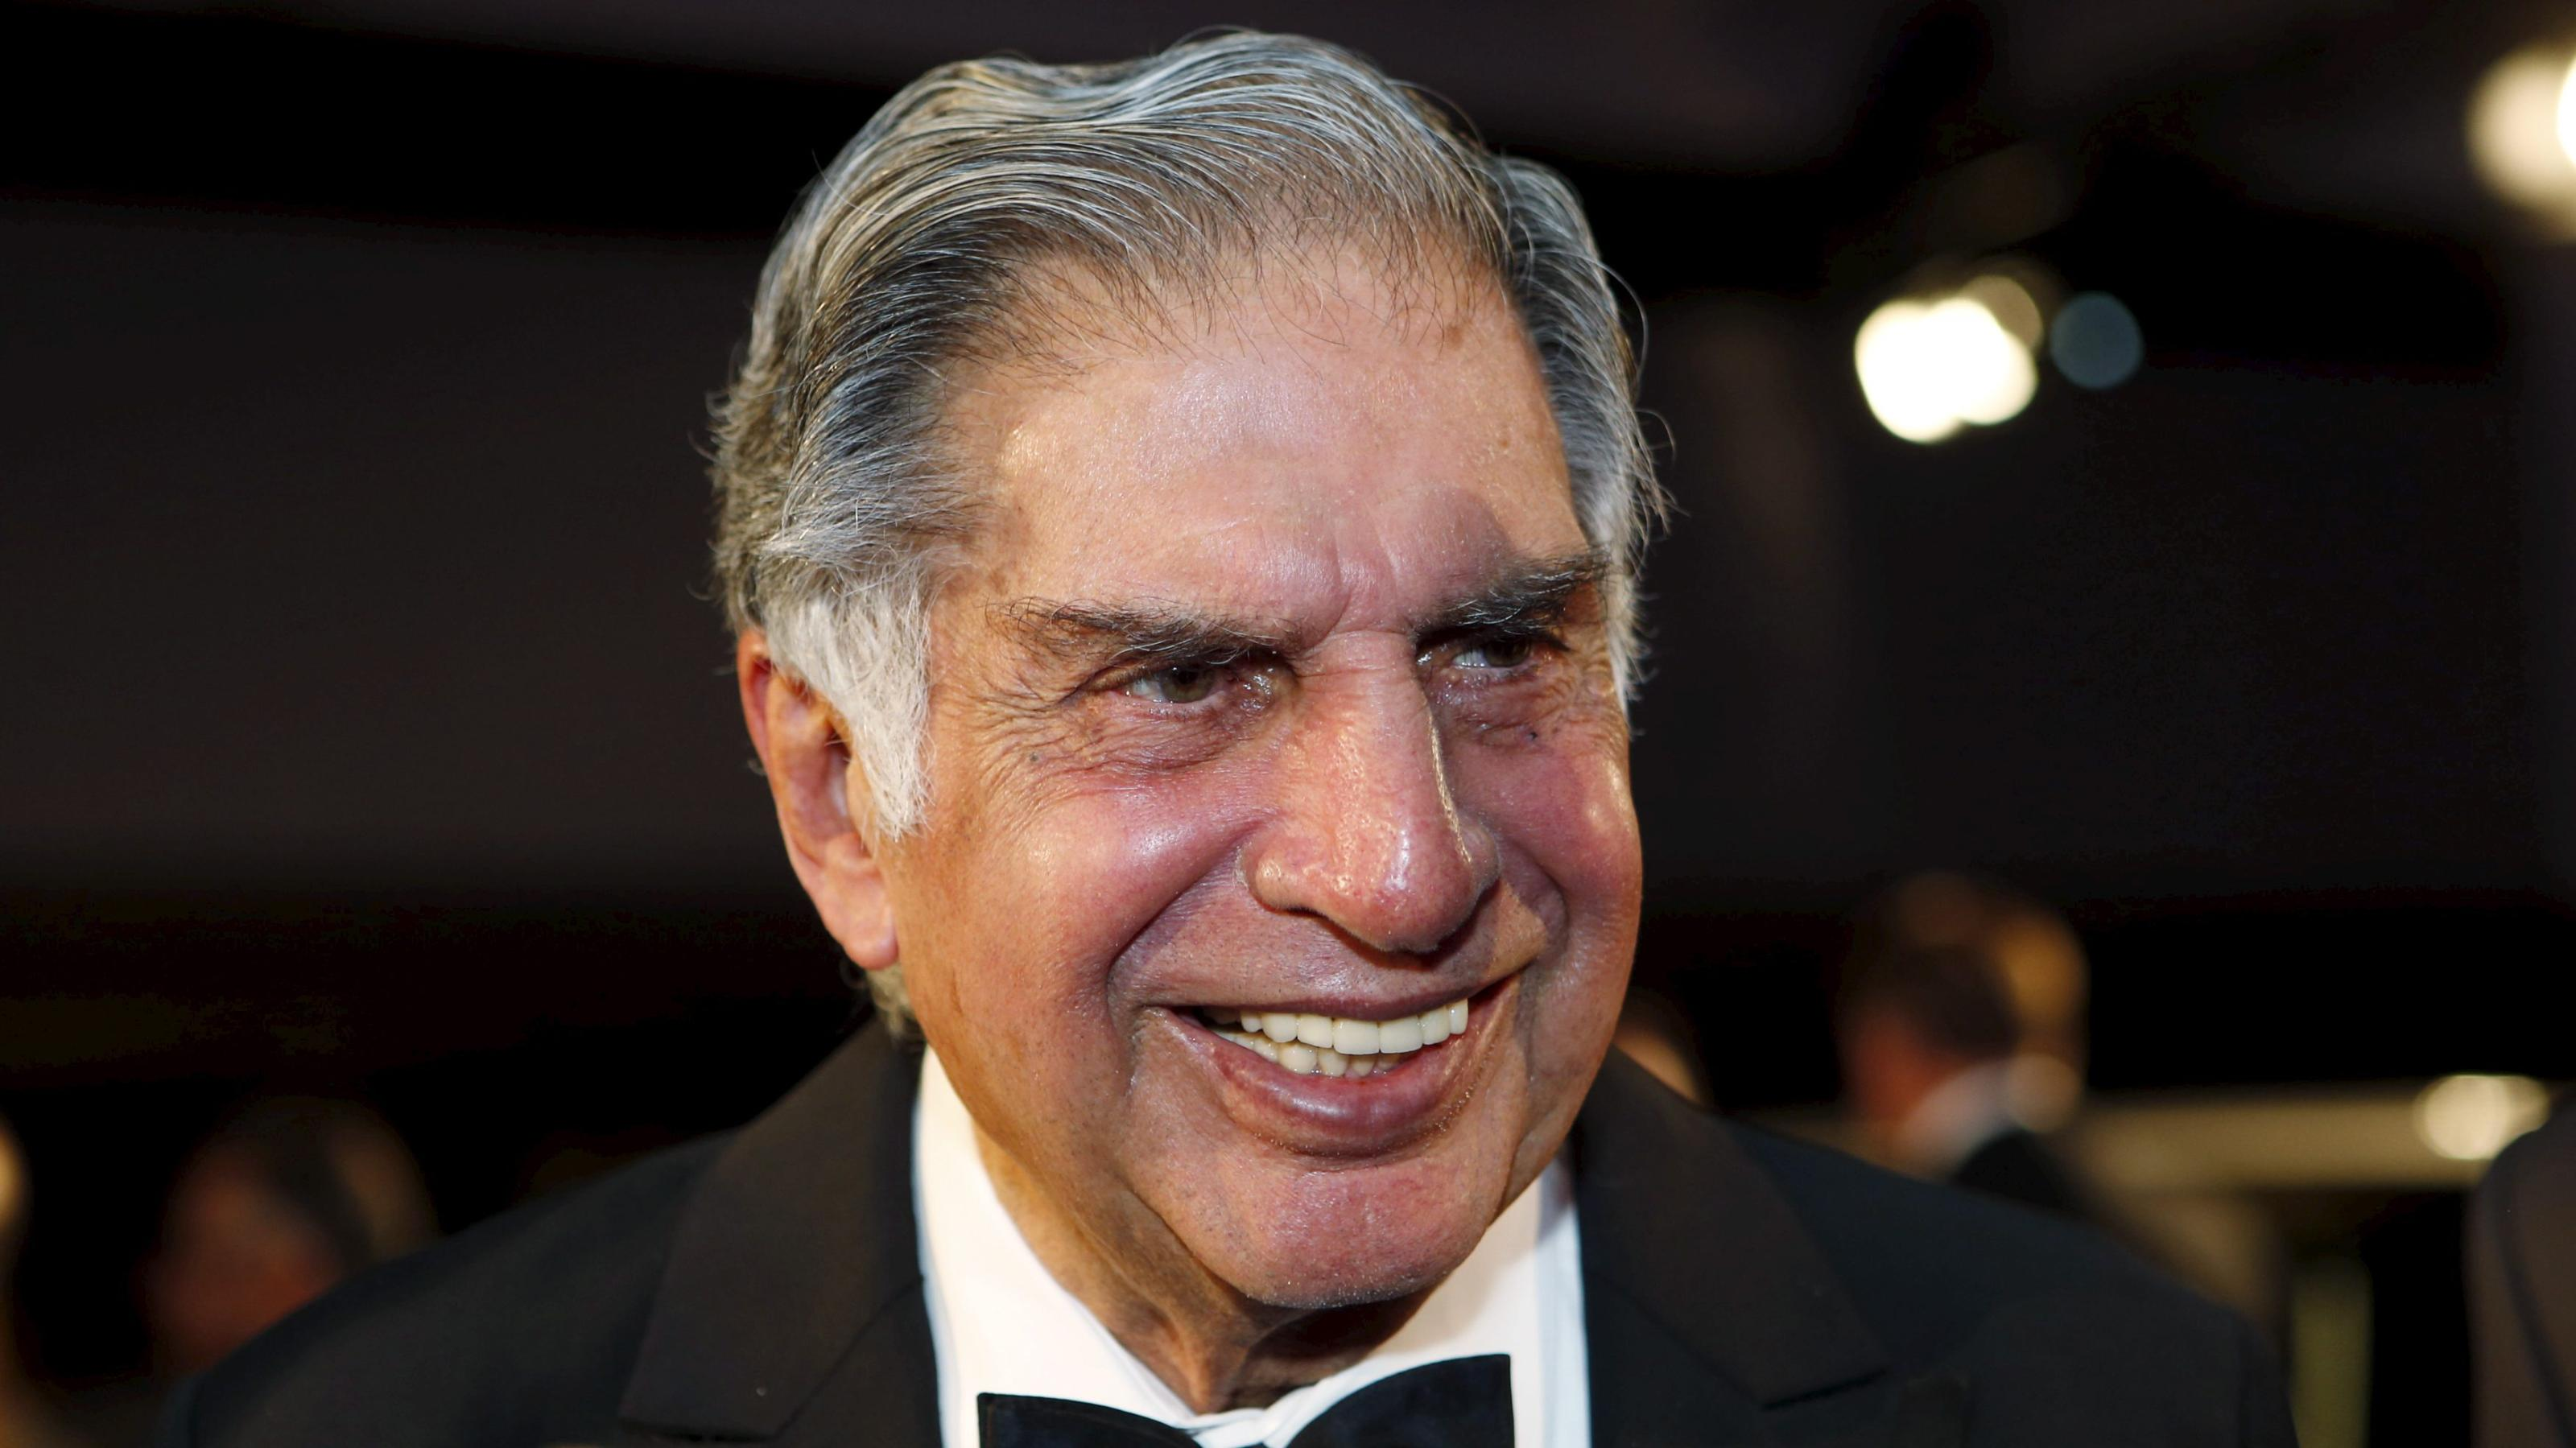 Ratan Tata backs Indian startups based on intuition and founders